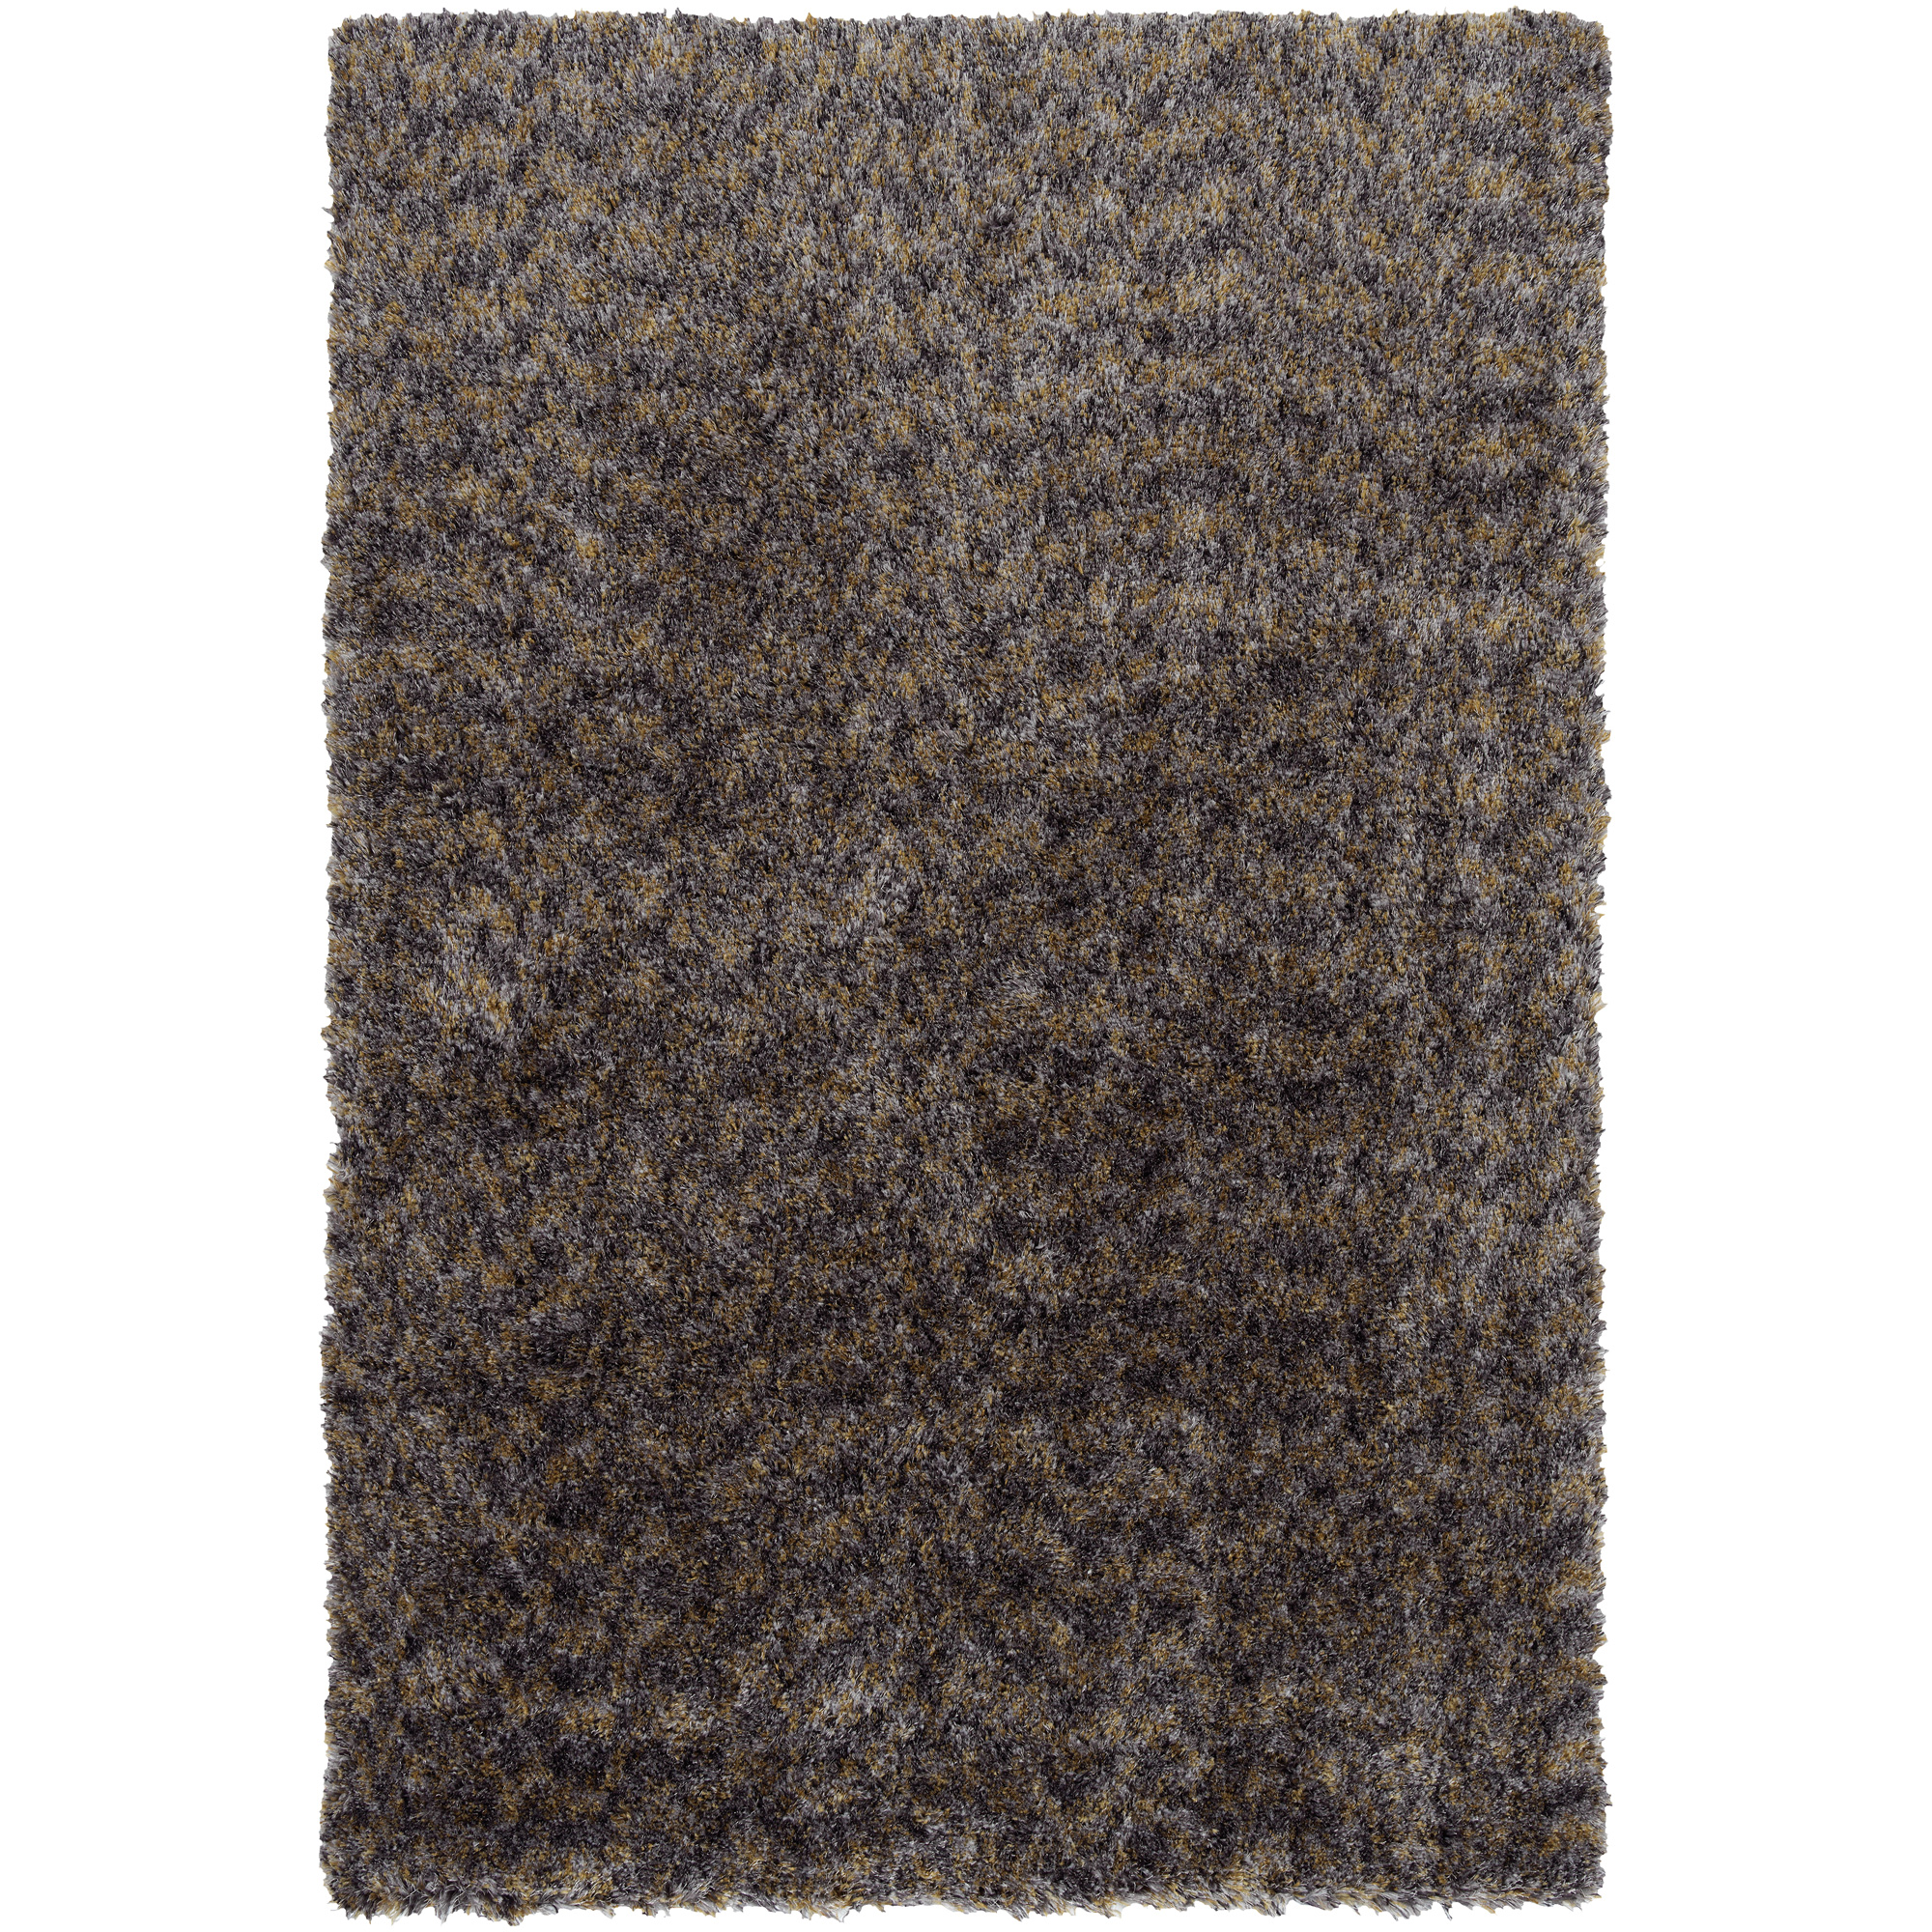 Dalyn Rug | Cabot Gray 5x8 Area Rug